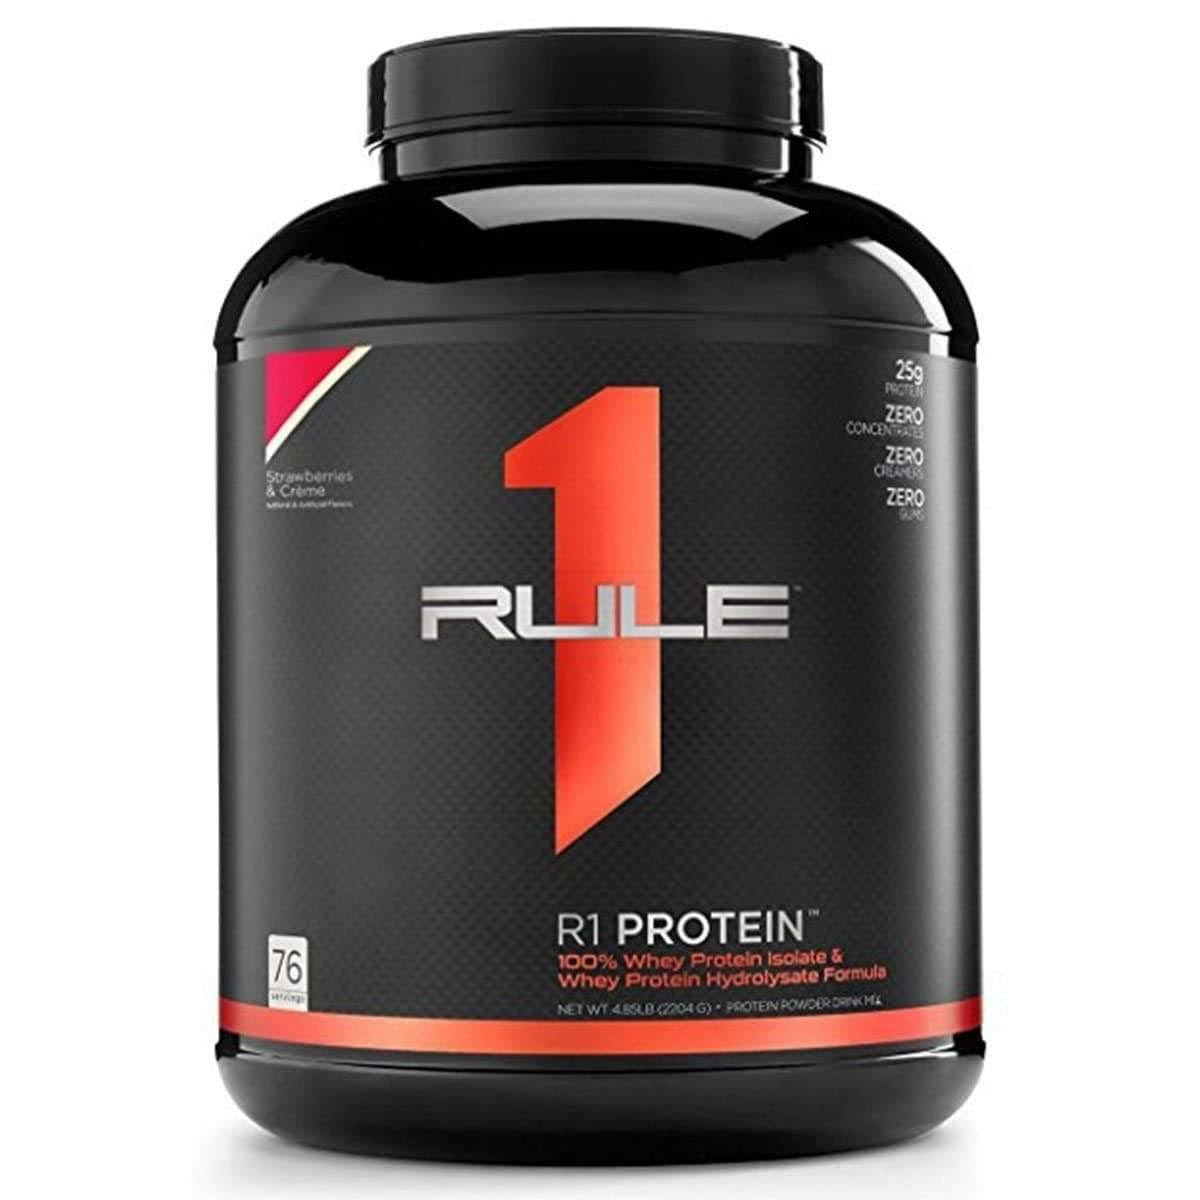 Rule 1 Whey Protein Isolate Supplement - Chocolate Peanut Butter, 76 Servings